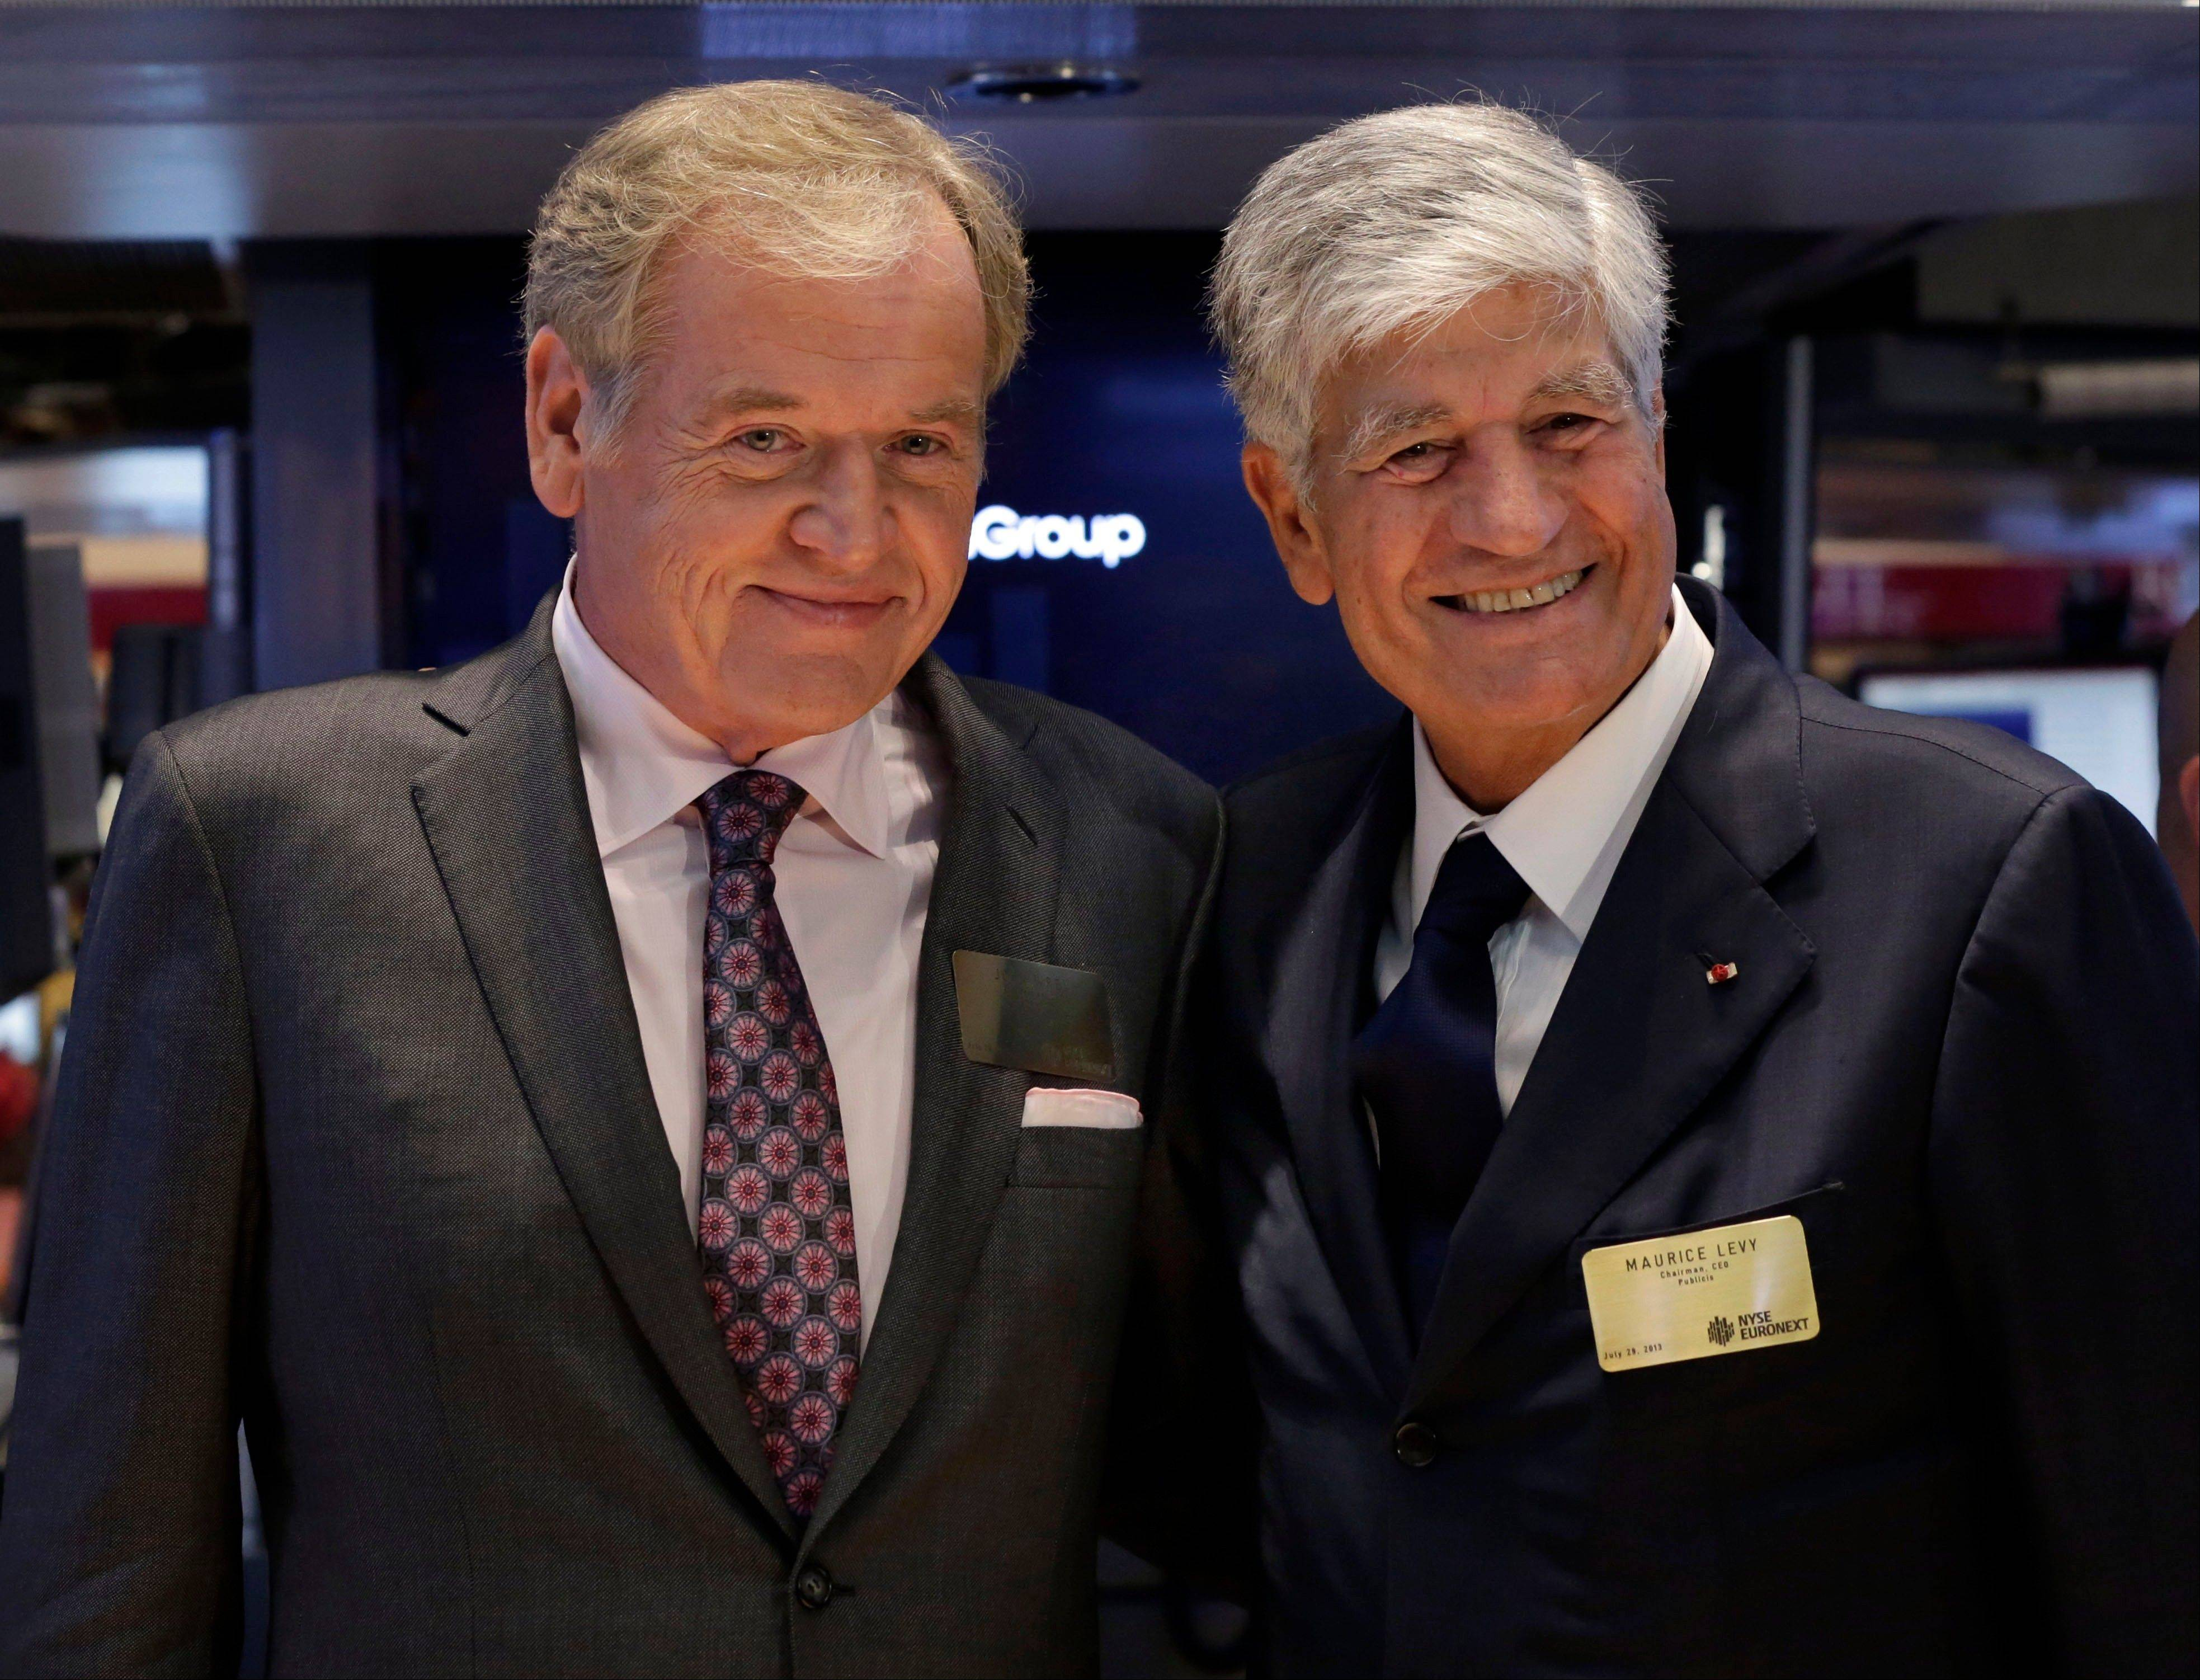 Omnicom Group President and CEO John Wren, left, and Publicis Groupe Chairman and CEO Maurice Levy met on the floor of the New York Stock Exchange Monday. Omnicom Group Inc. and Publicis Groupe SA are merging to create the world's largest advertising firm, one worth more than $35 billion.